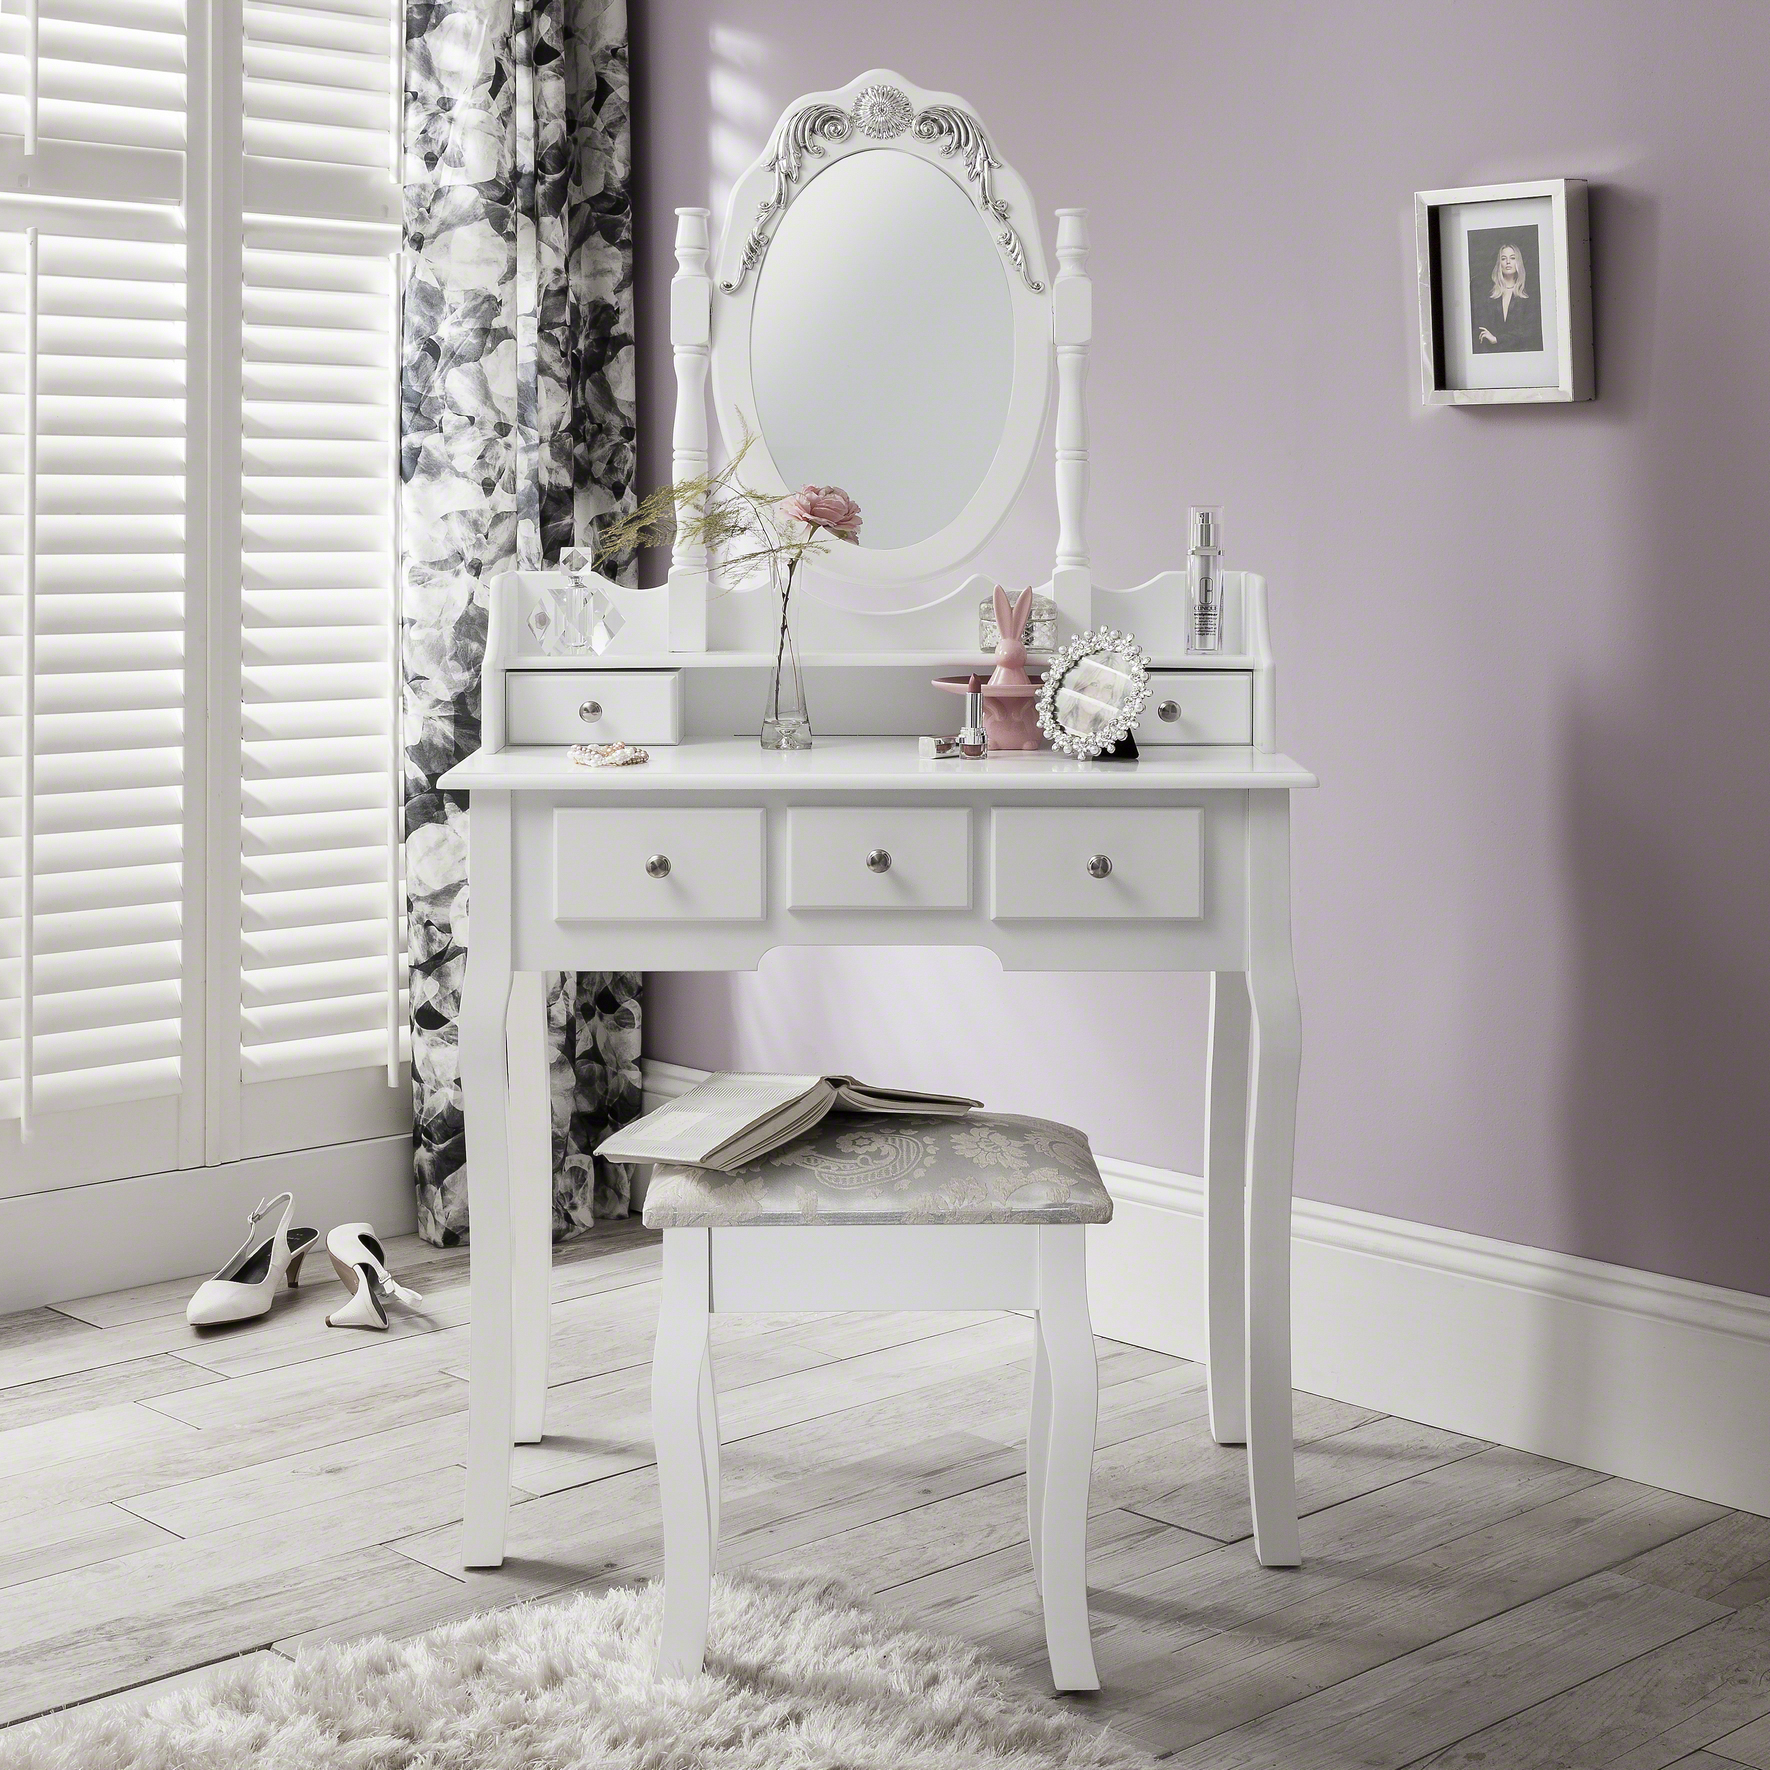 Capri White Dressing Table Mirror and Stool Set Dresser | eBay